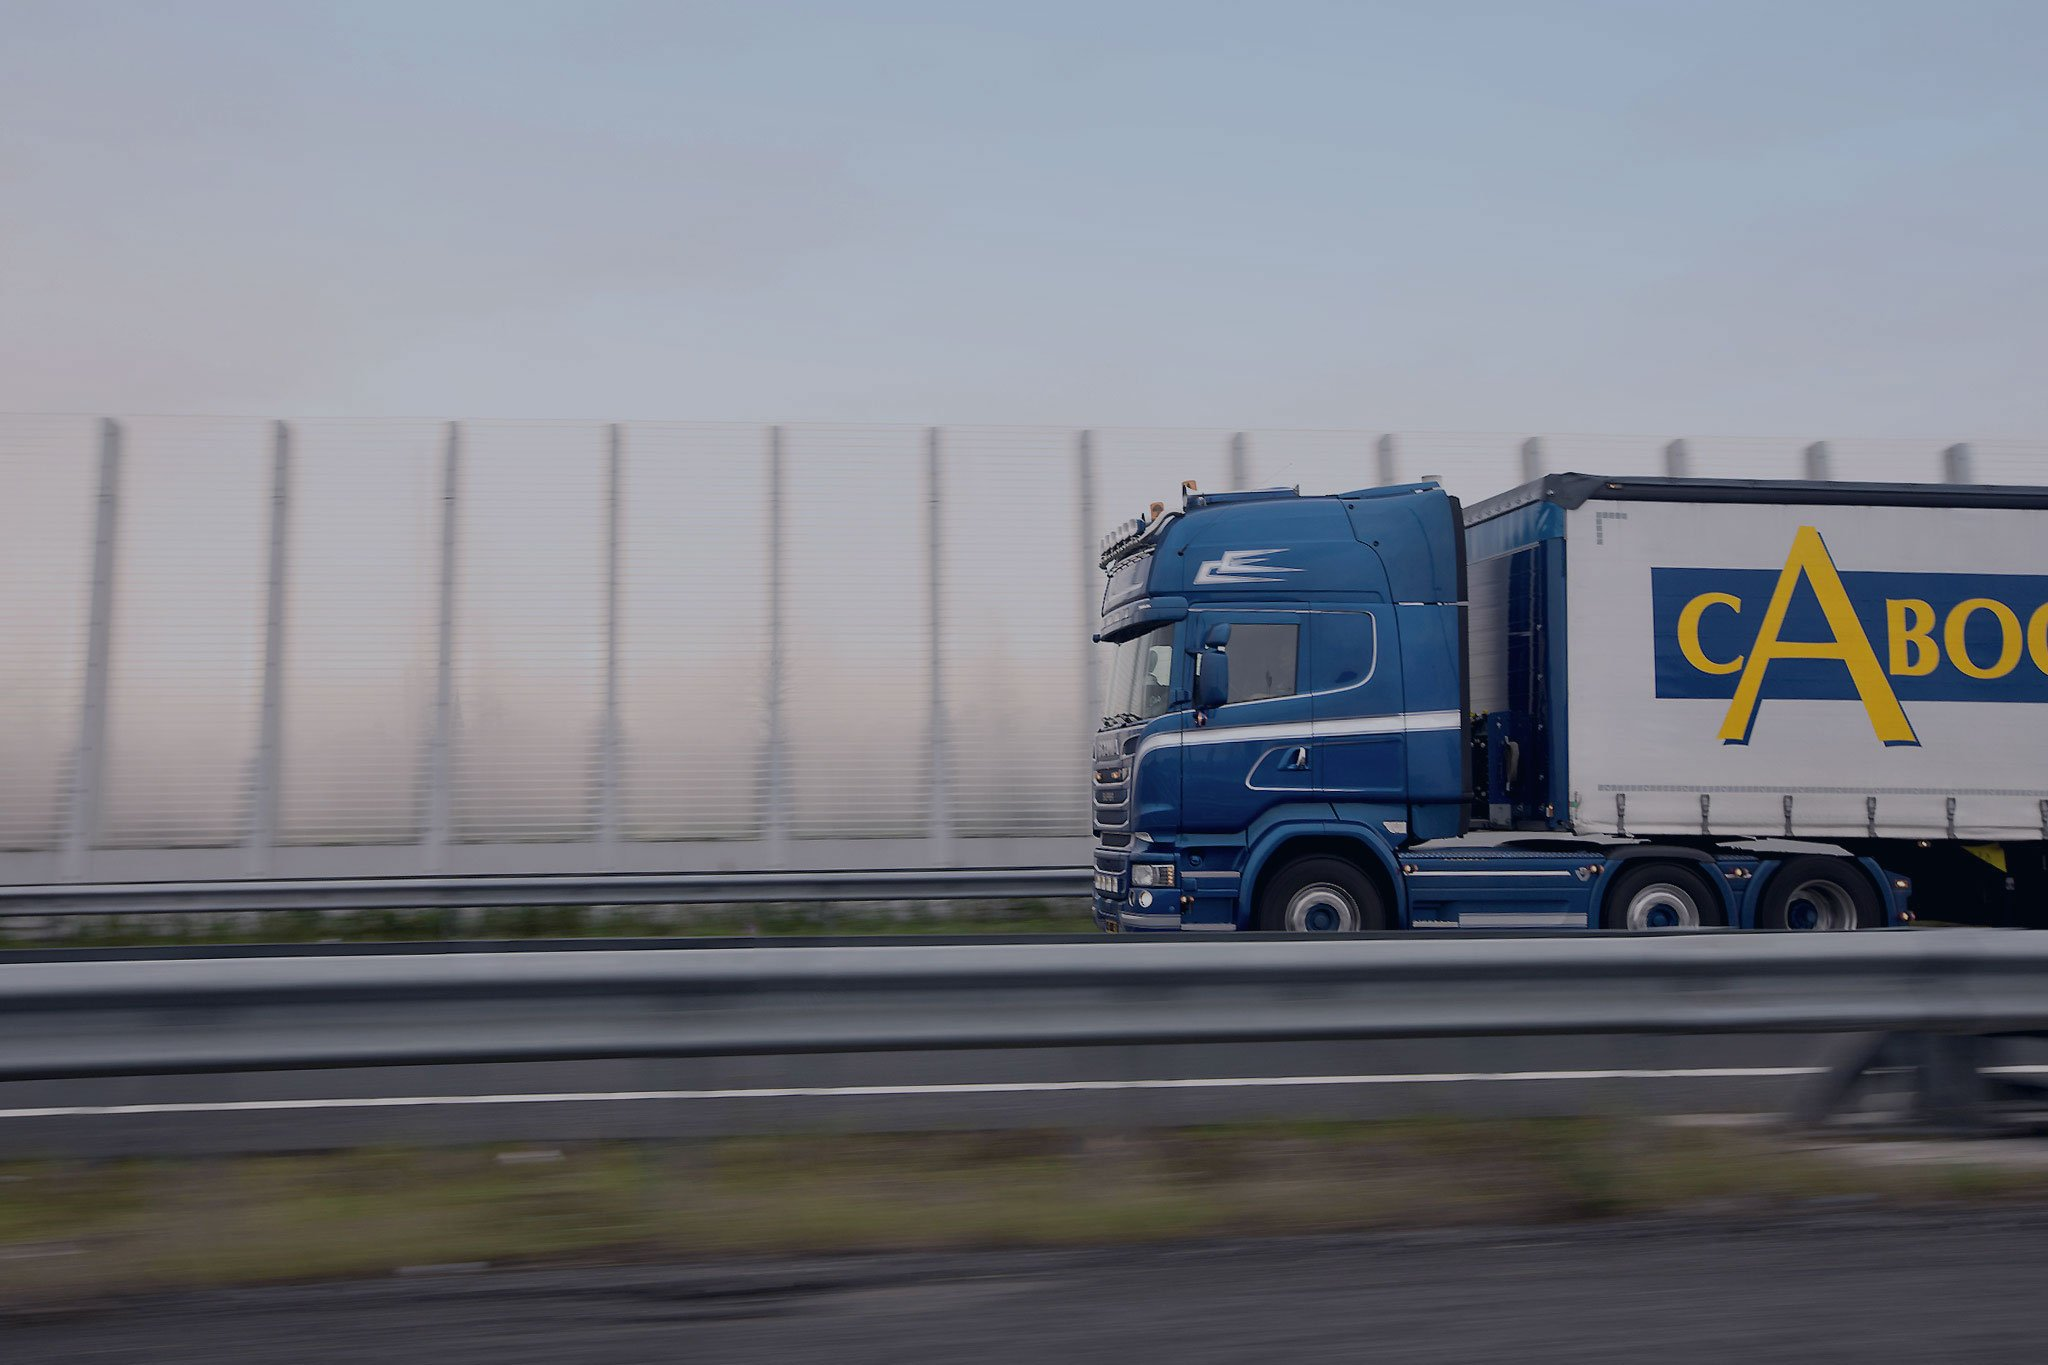 cabooter truck on the road